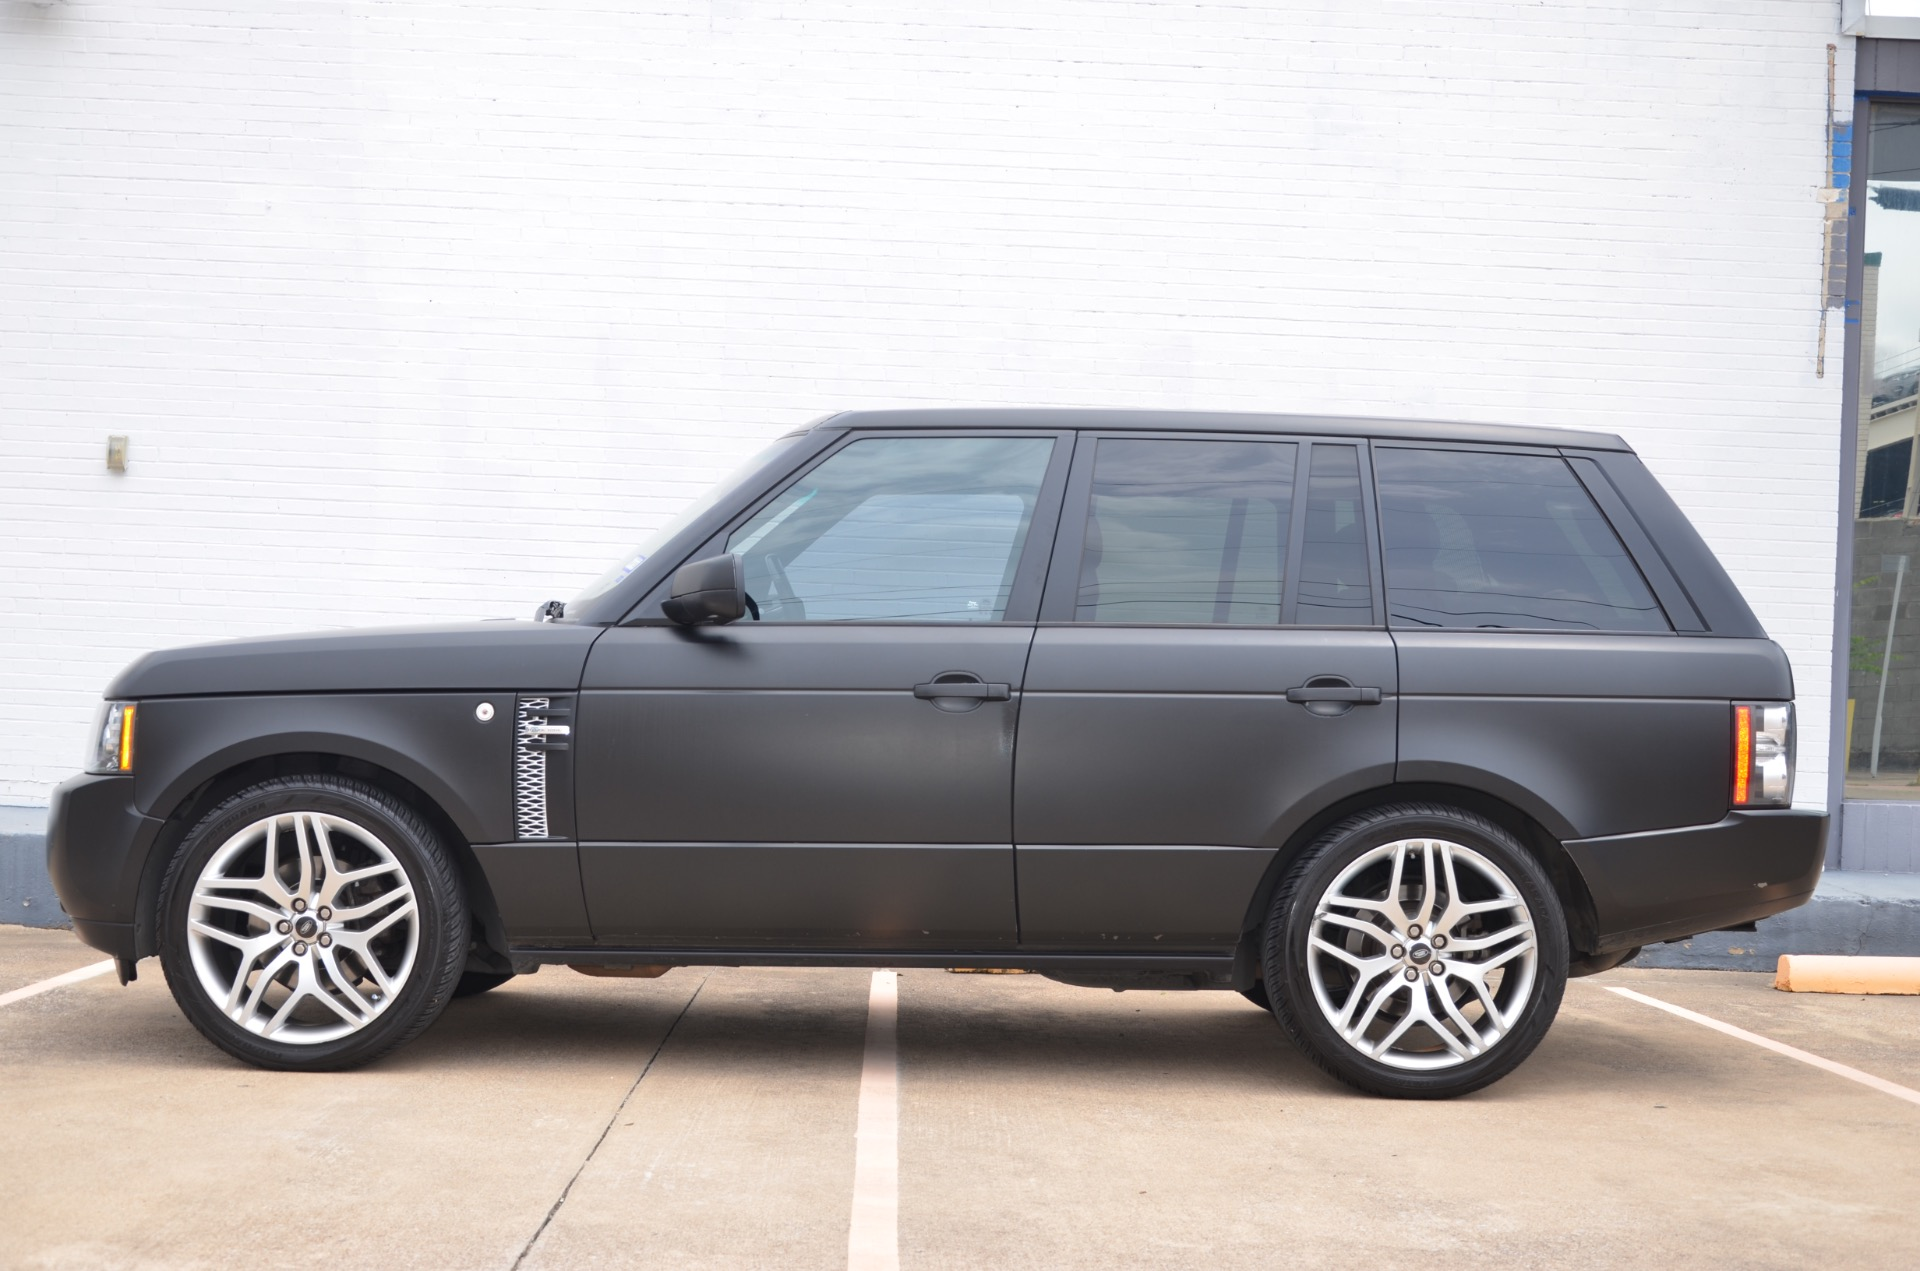 2010 land rover range rover hse lux stock 1orrhse for sale near dallas tx tx land rover. Black Bedroom Furniture Sets. Home Design Ideas